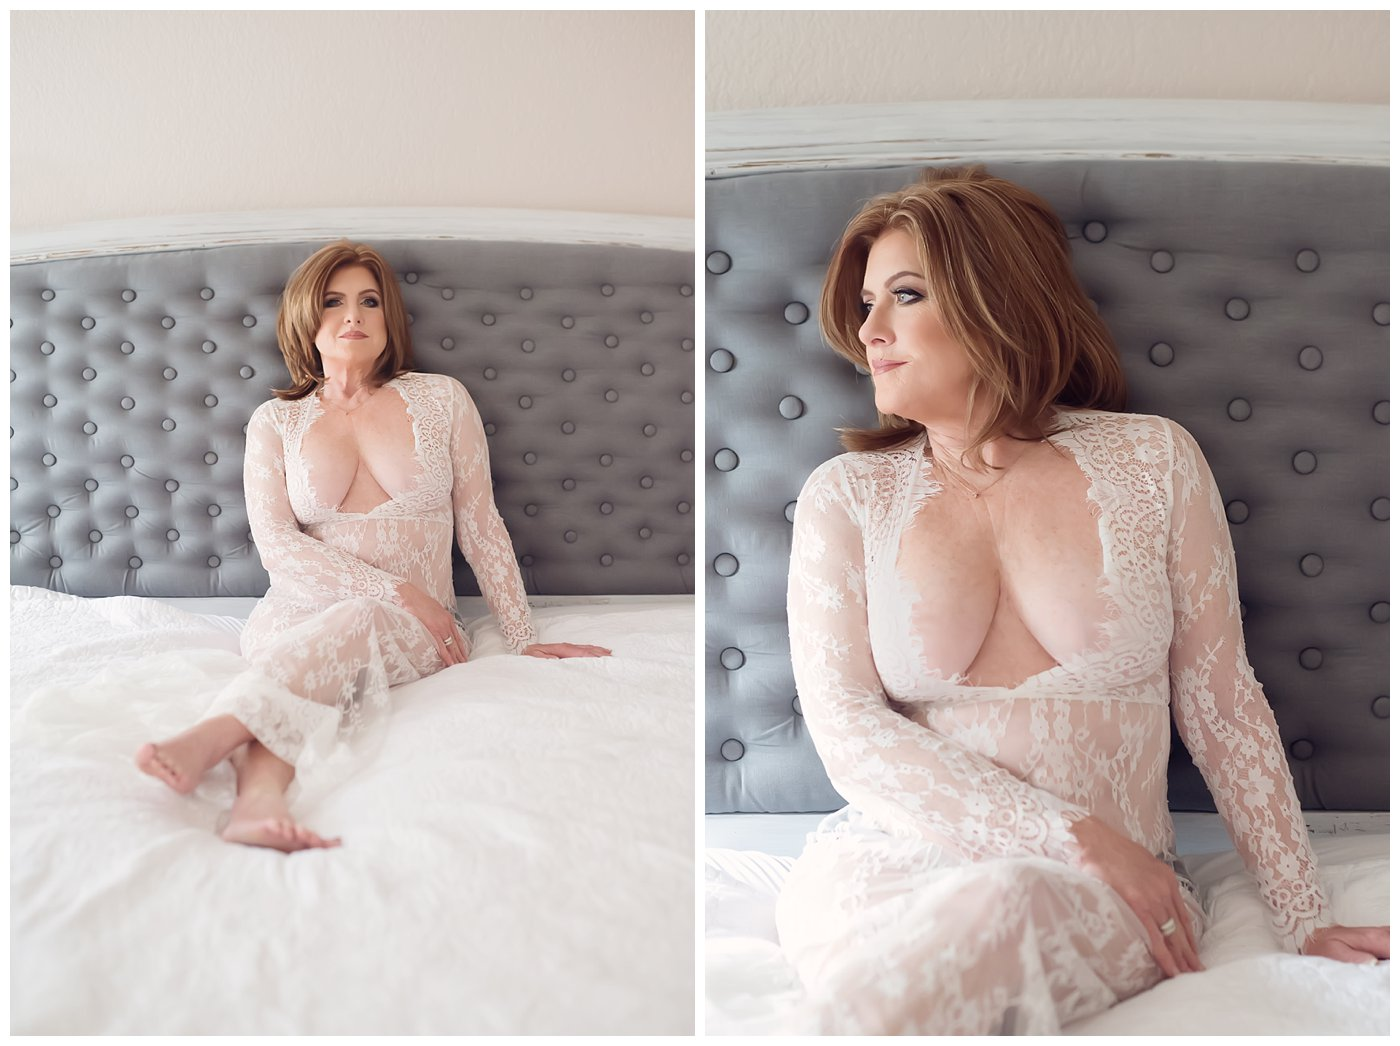 http://www.boudoirwithmary.com/wp-content/uploads/2017/11/2017-11-19_0064.jpg